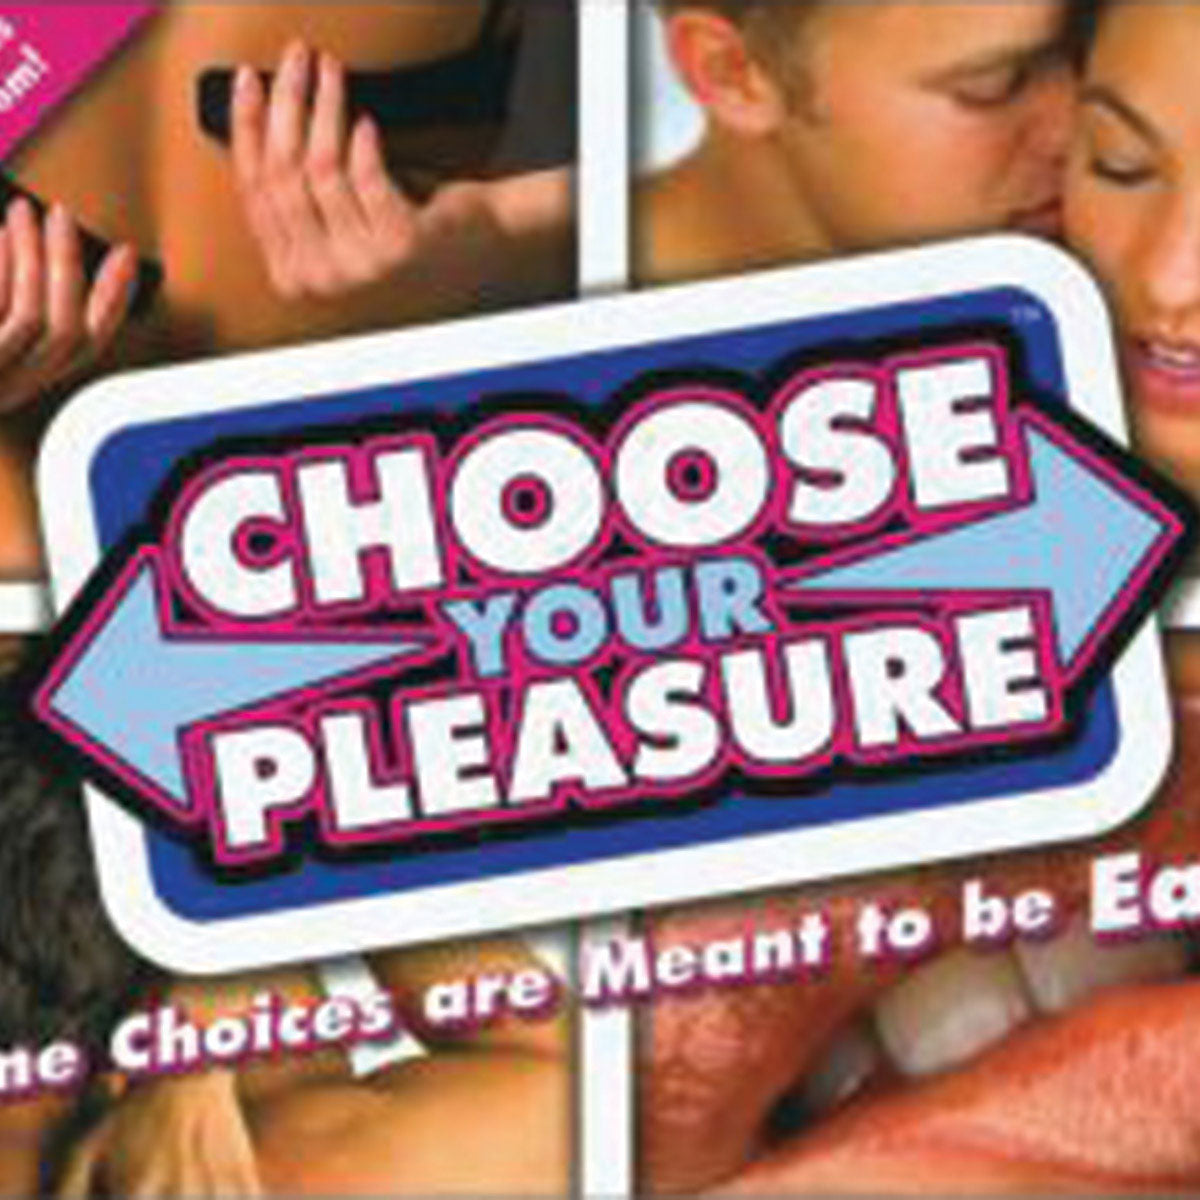 Little Genie Choose Your Pleasure Game - Some Choices Are Meant To Be Easy!